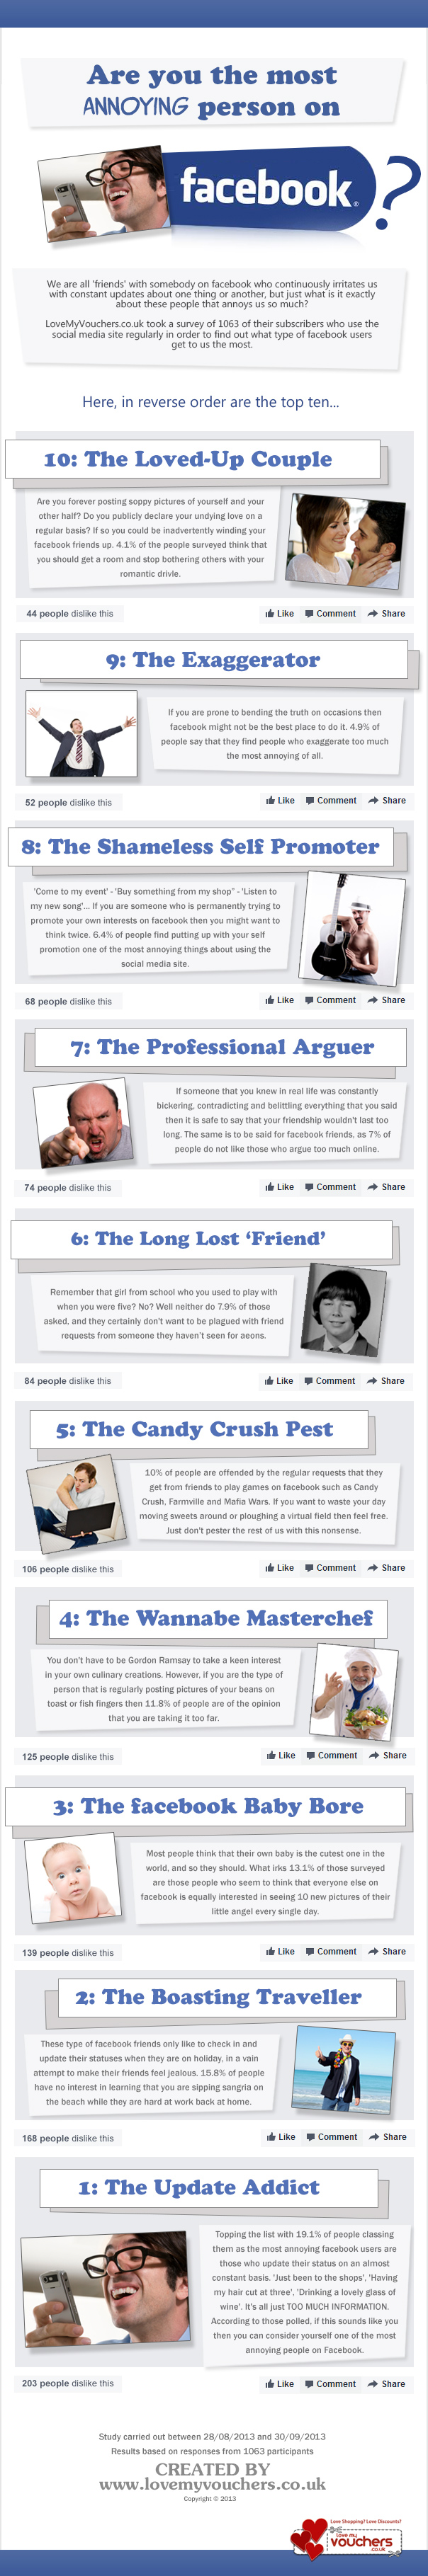 Are You the Most Annoying Person on Facebook? Image: Linda/lovemyvouchers.co.uk